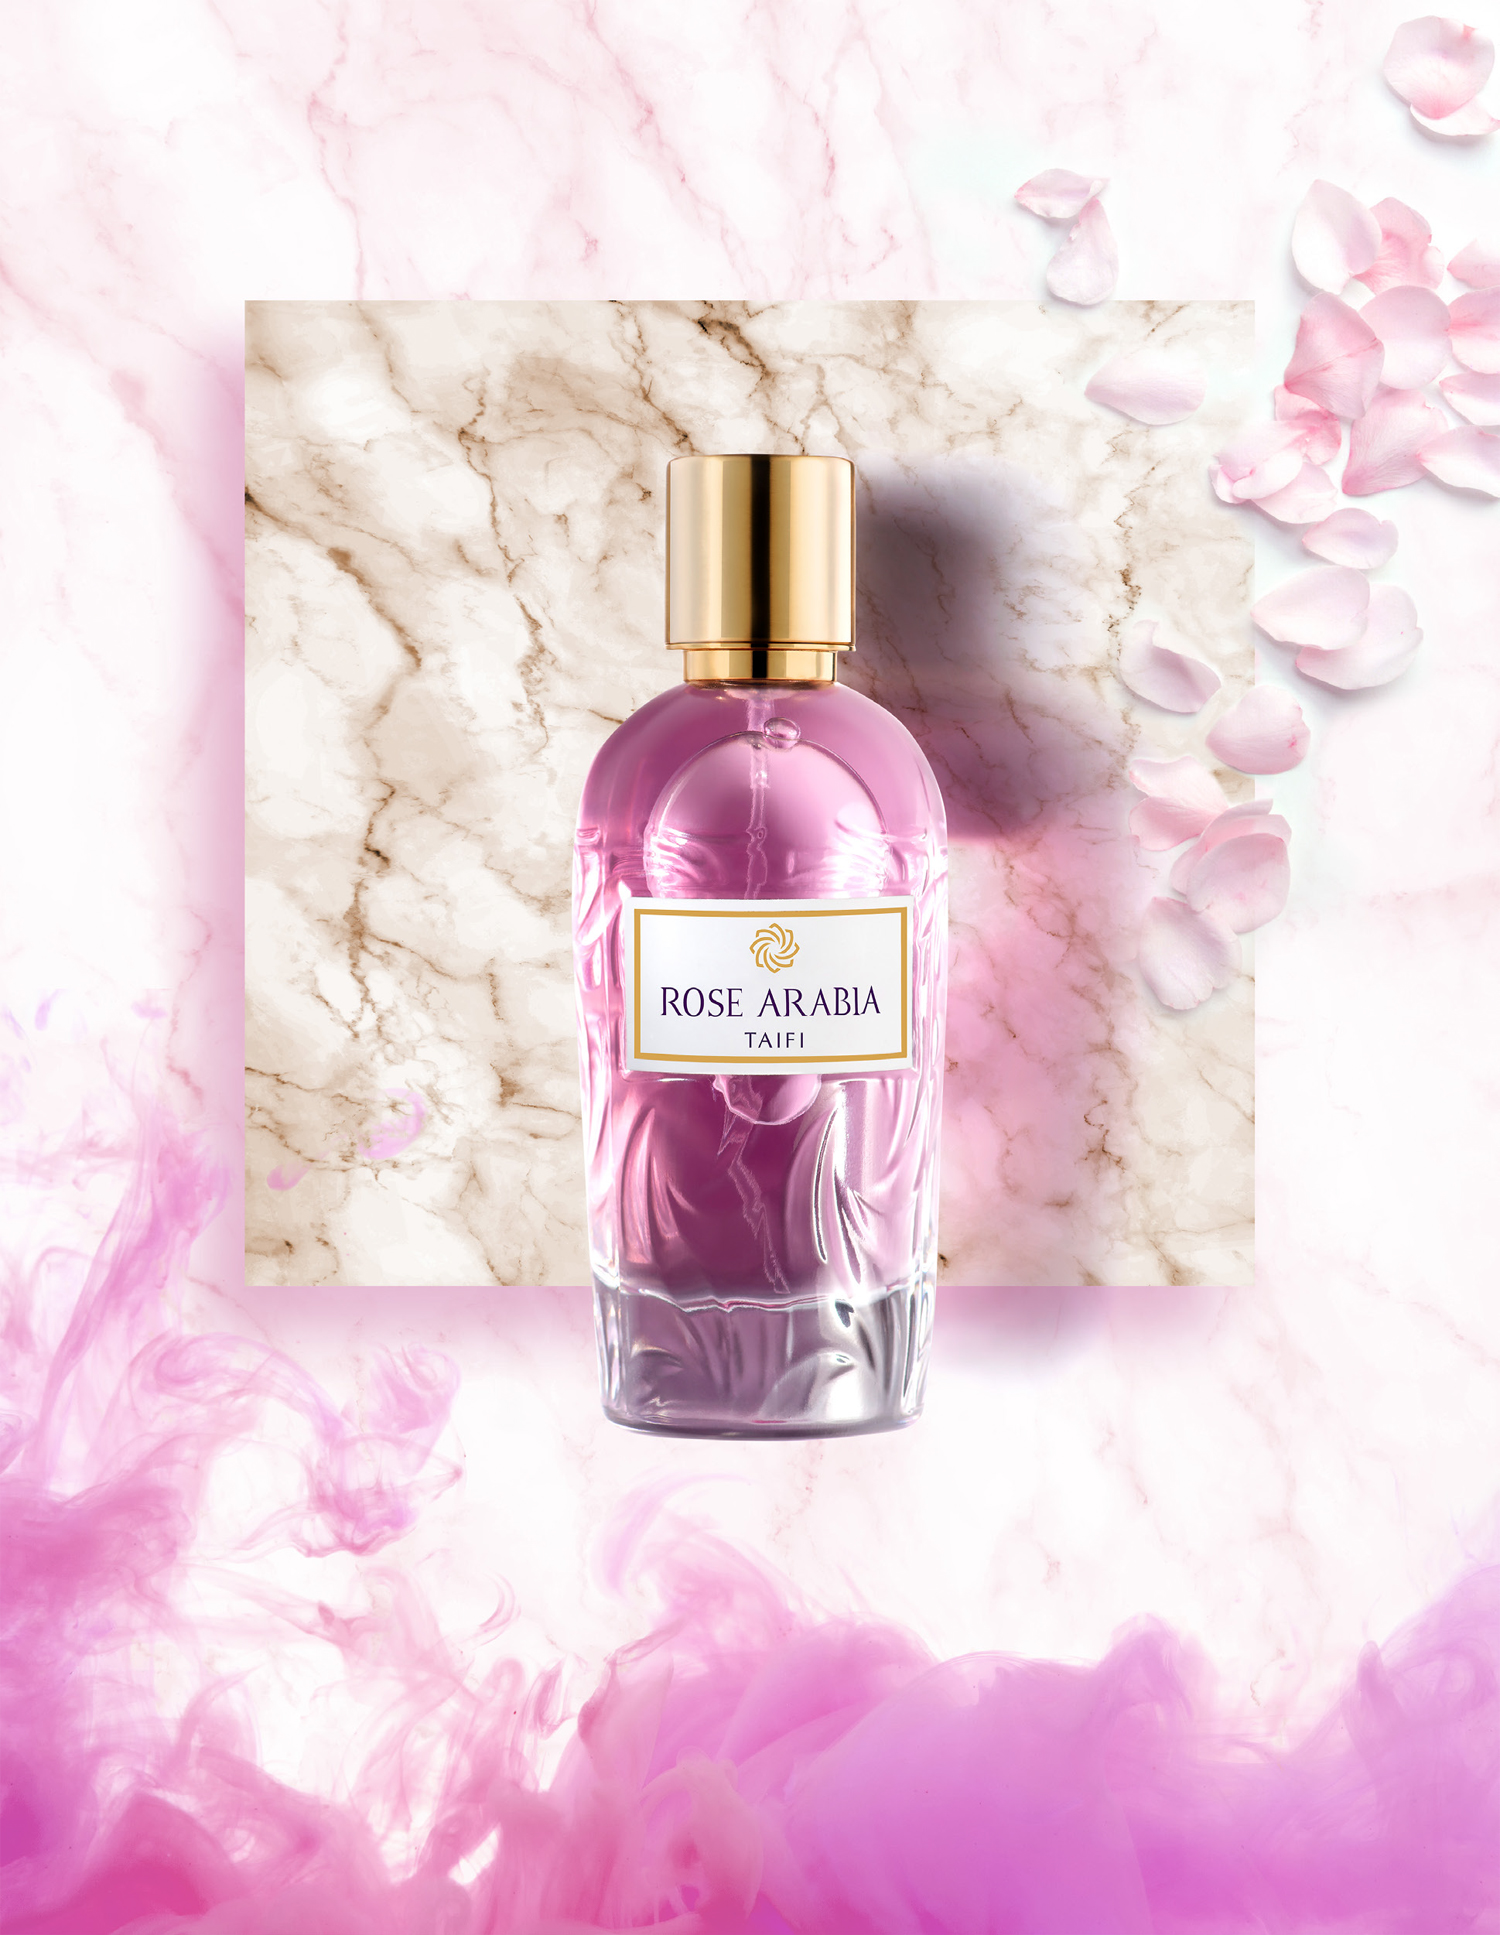 Widian Rose Arabia Collection Almond Taifi Y Lily